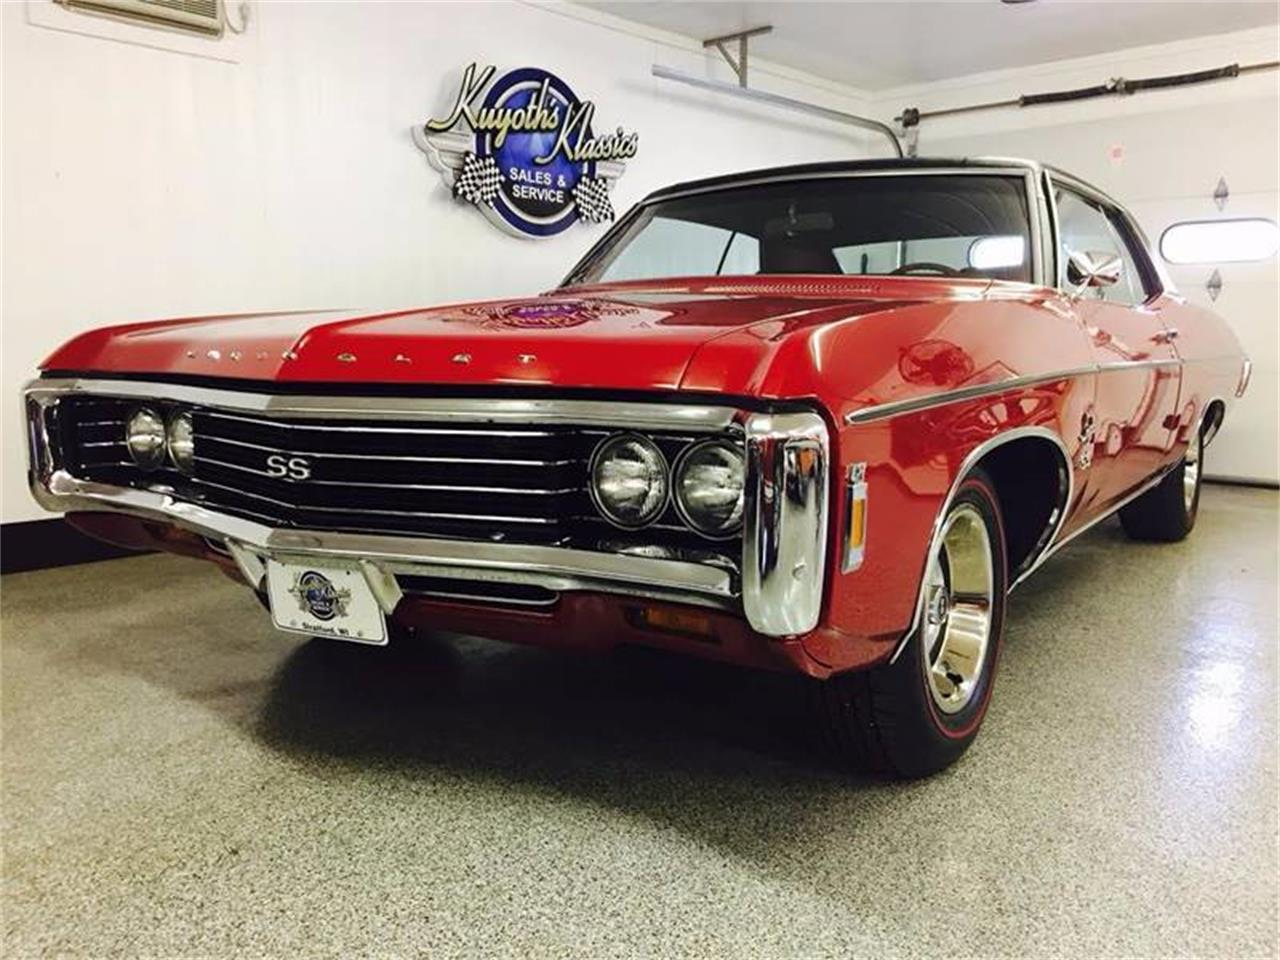 Large Picture of Classic '69 Chevrolet Impala Offered by Kuyoth's Klassics - MHAH